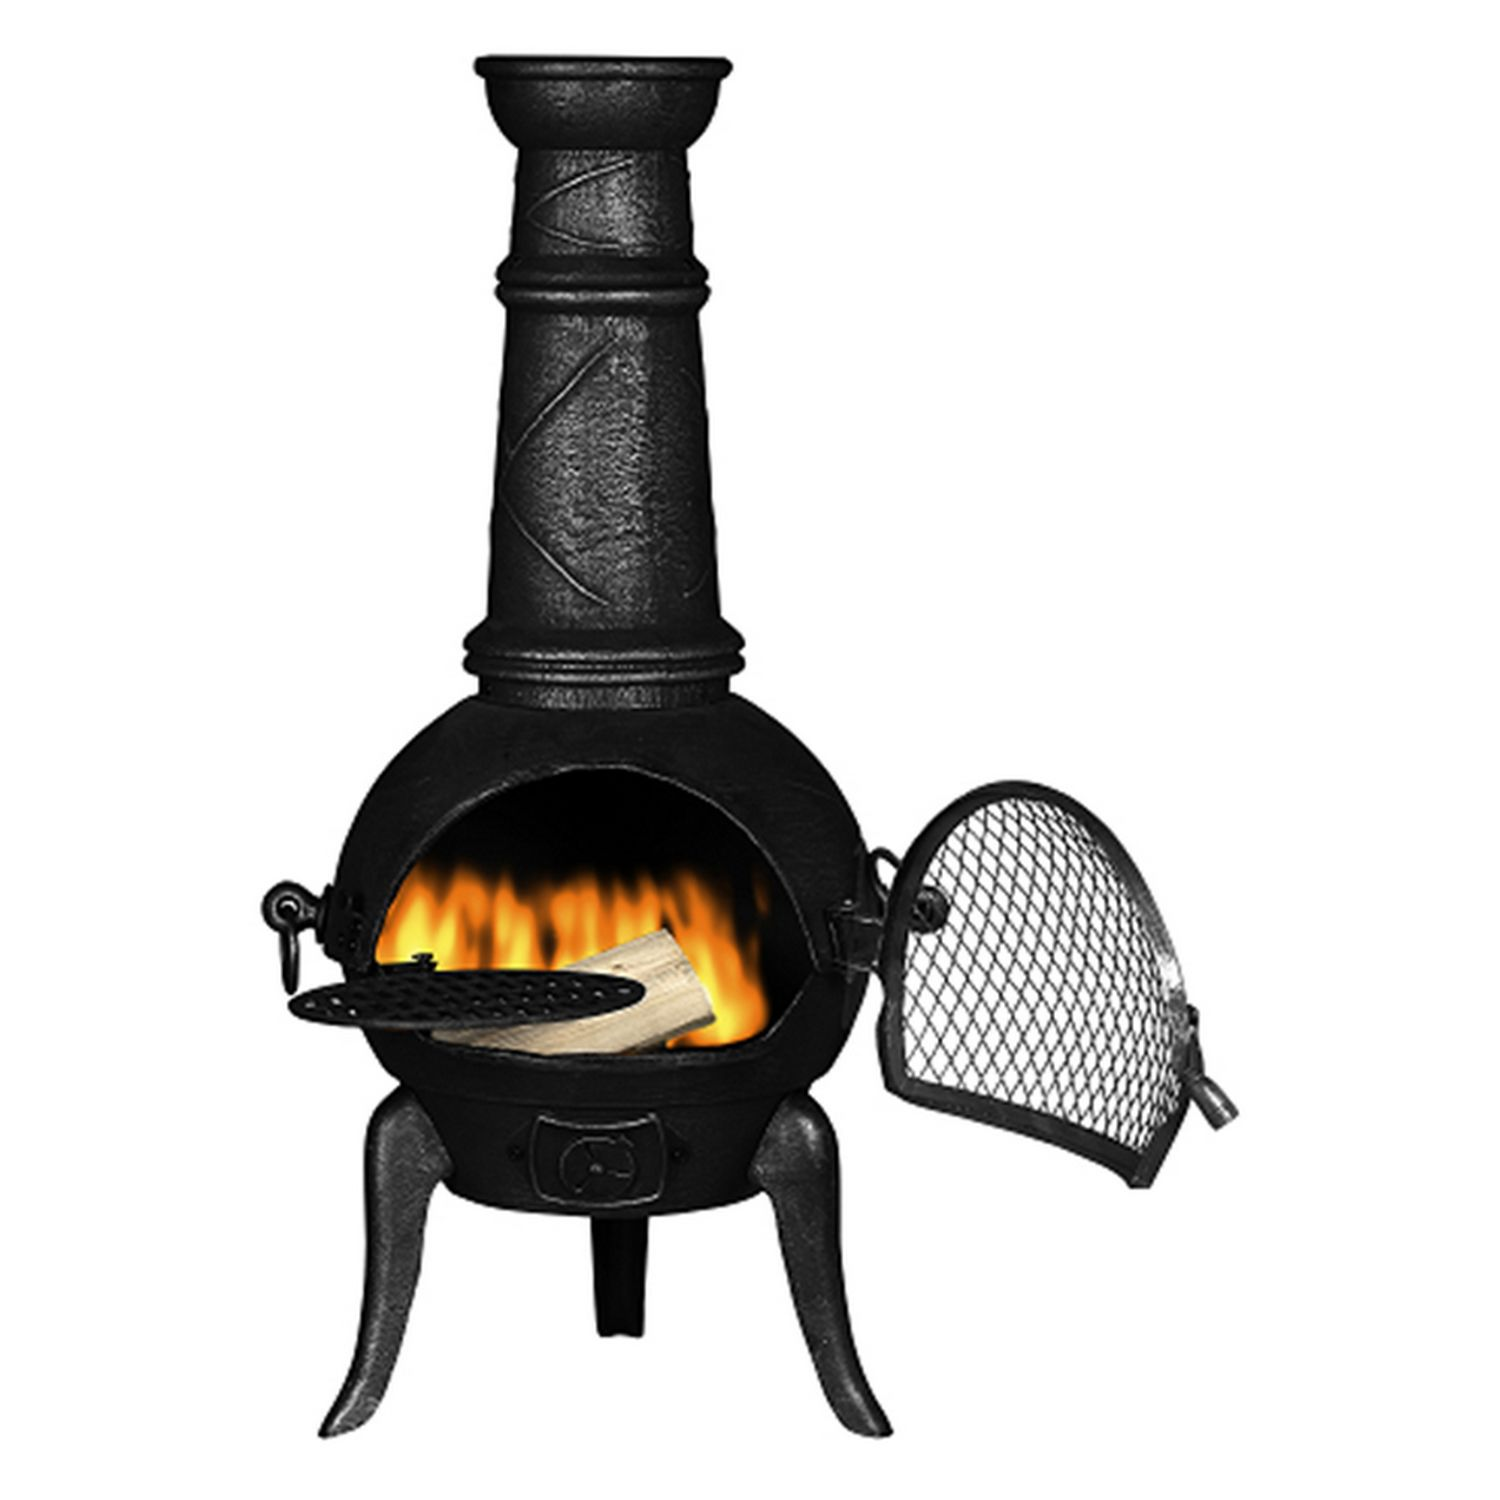 Cast Iron Chiminea Fireplace For Outdoor Fireplace Ideas